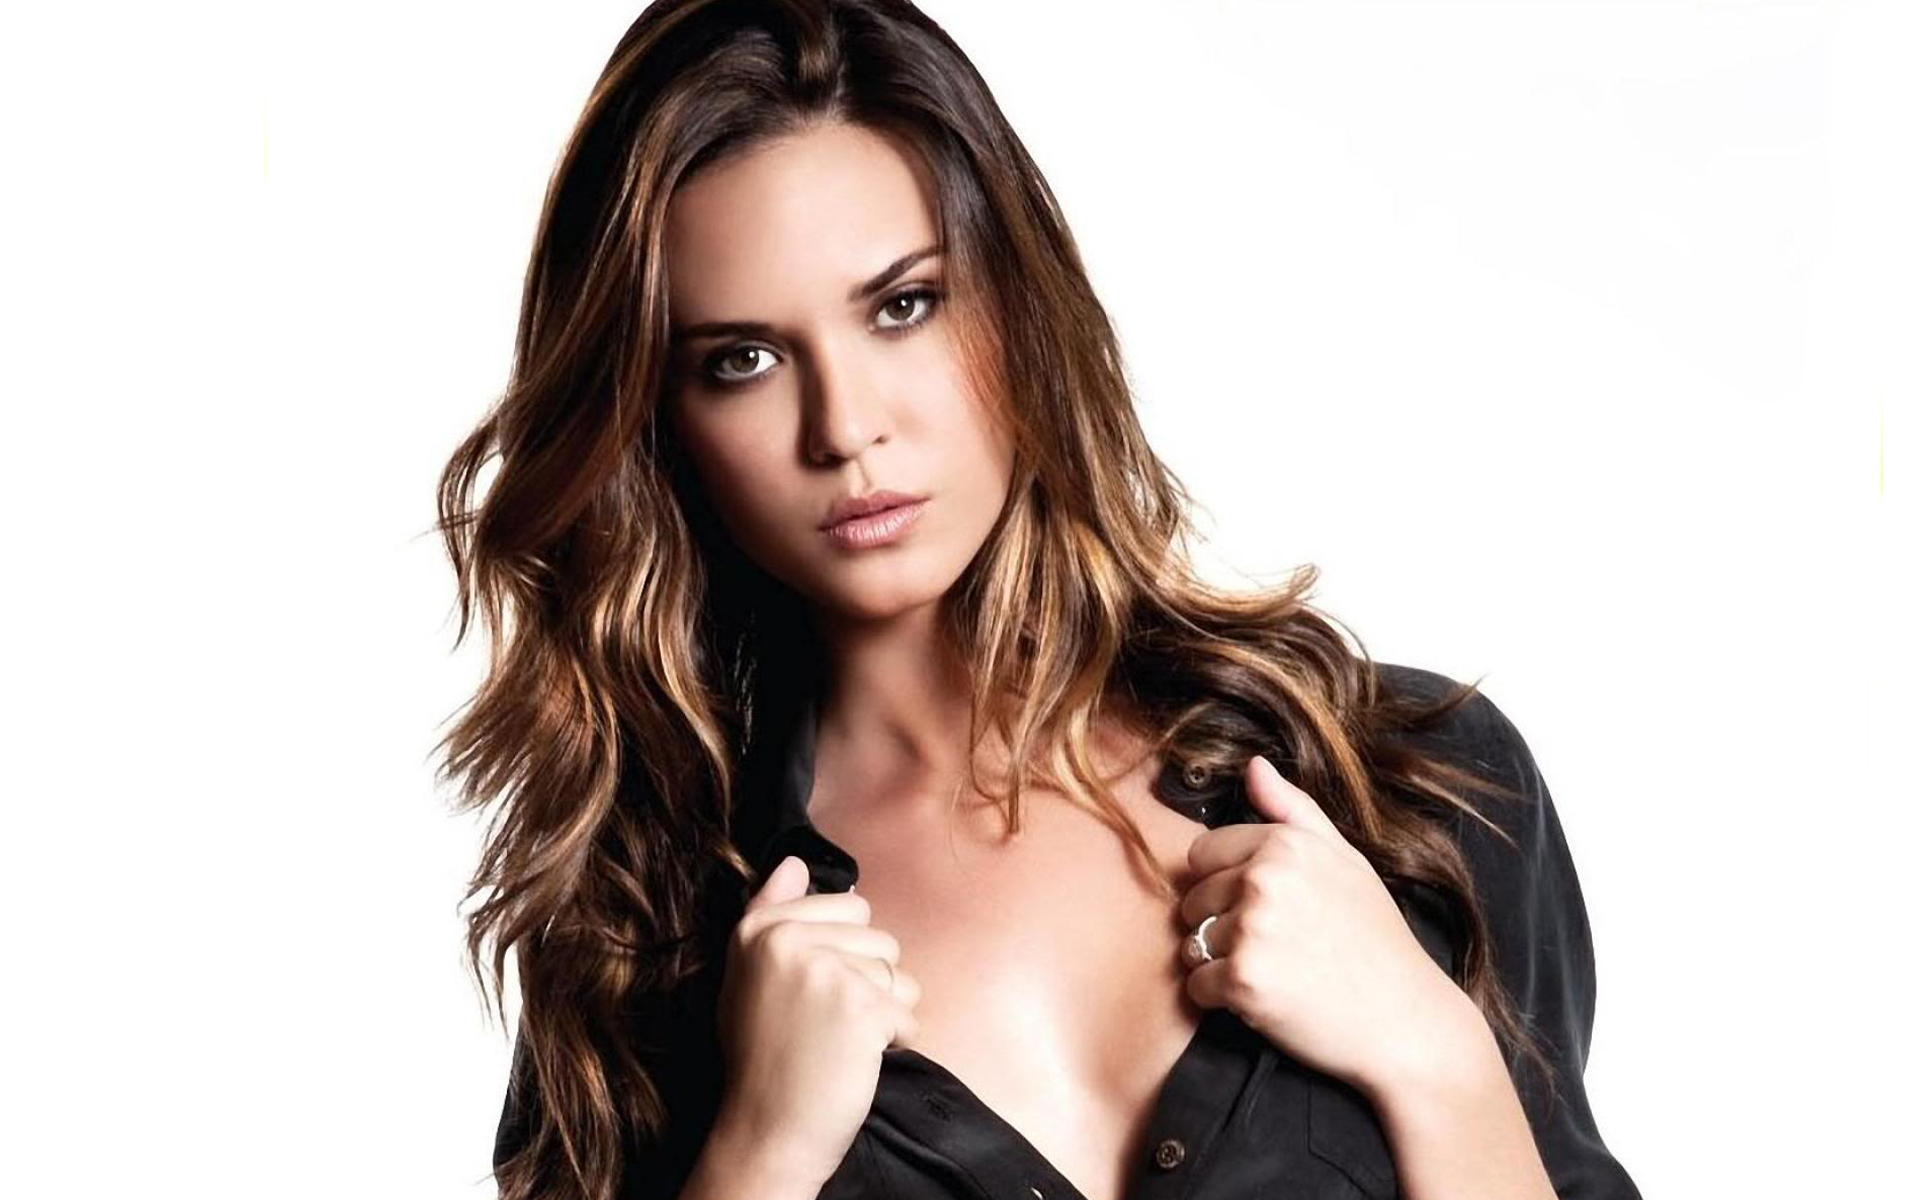 1920x1200 - Odette Annable Wallpapers 12